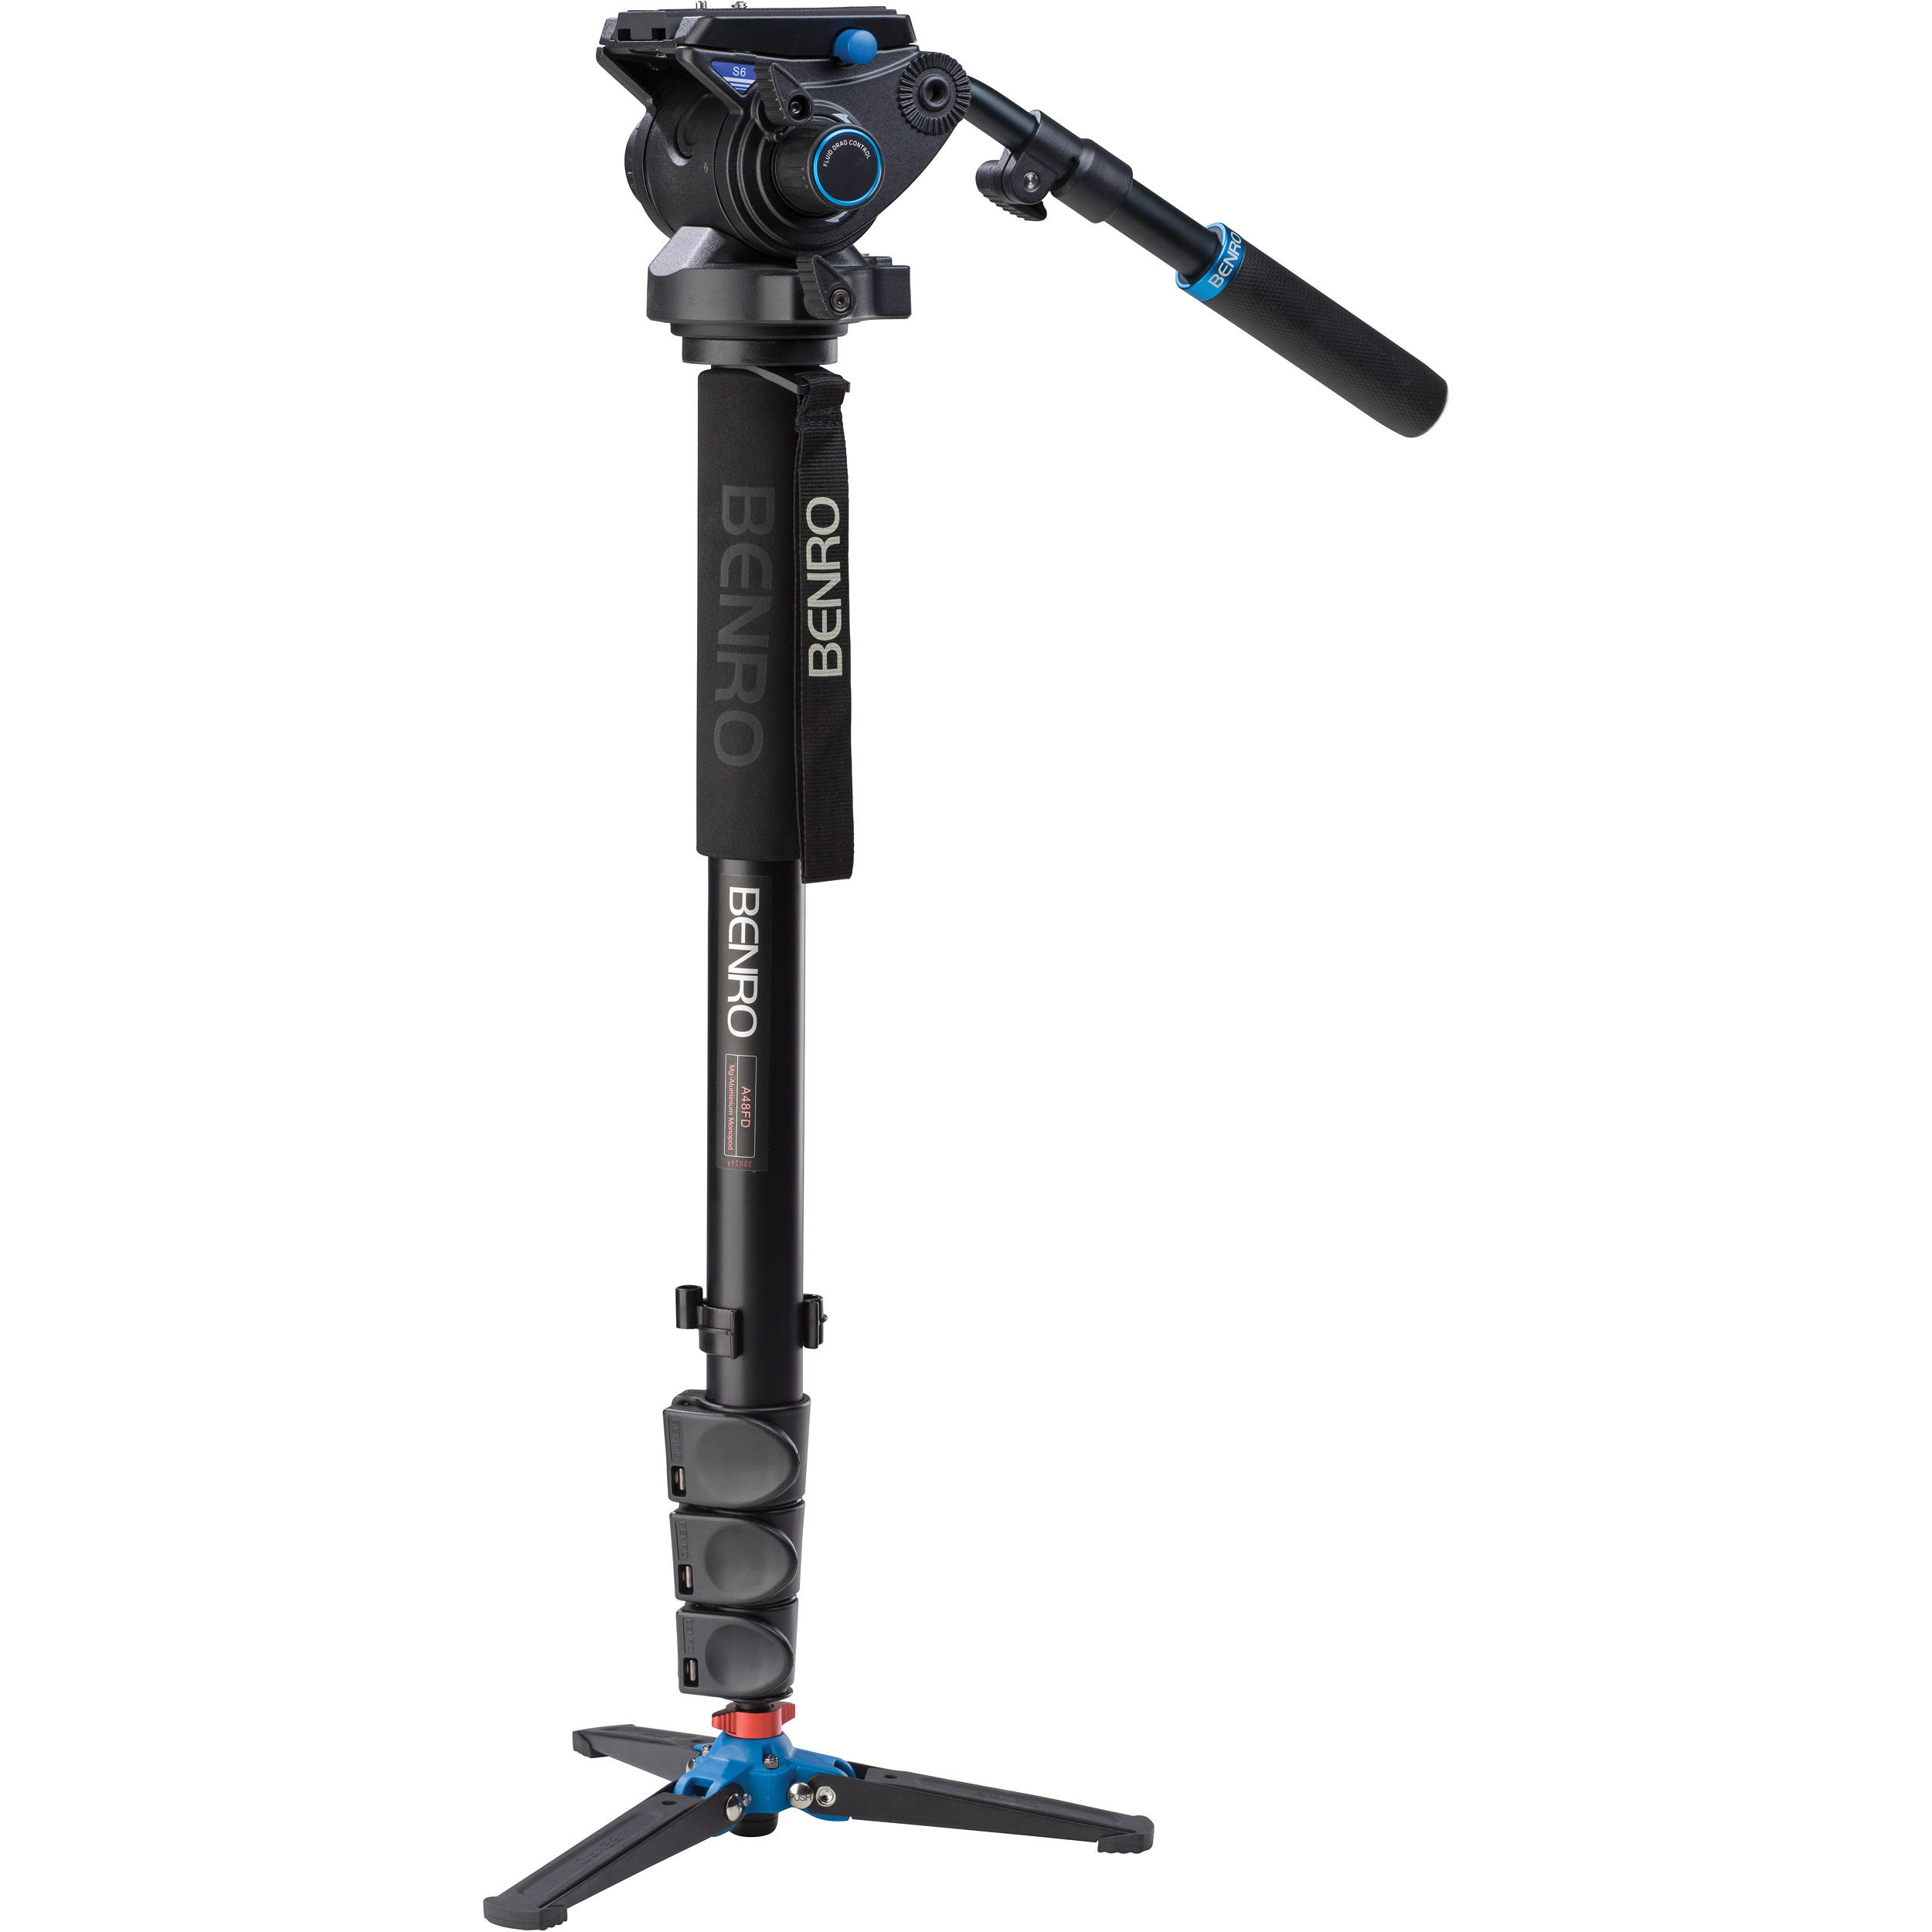 Benro A48FDS6 Series 4 Aluminum Monopod with 3-Leg A48FDS6 B&H